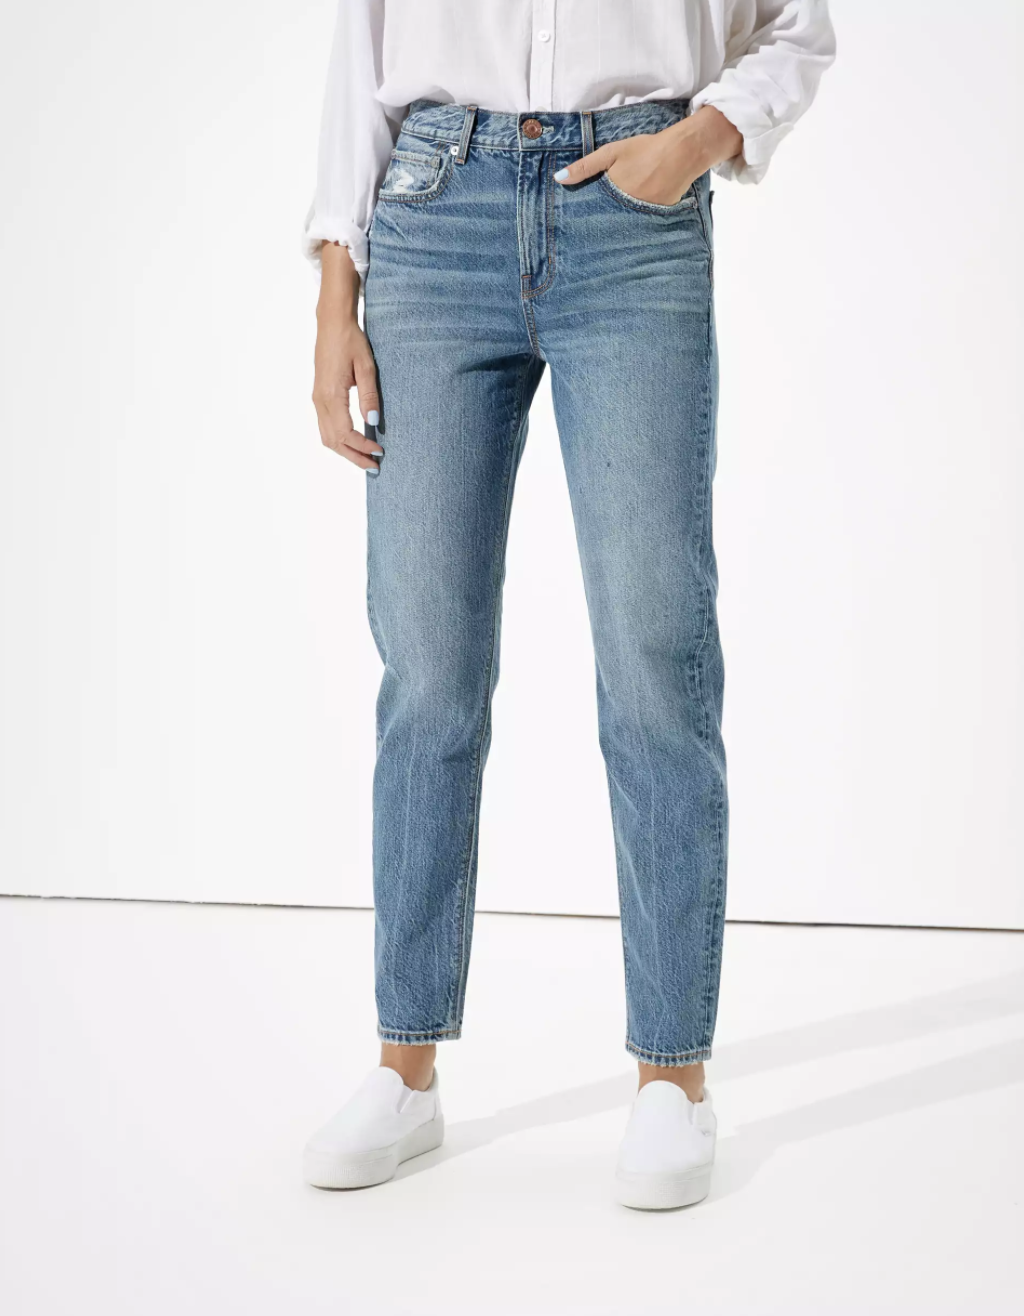 american eagle boyfriend jeans, best jeans for each zodiac sign